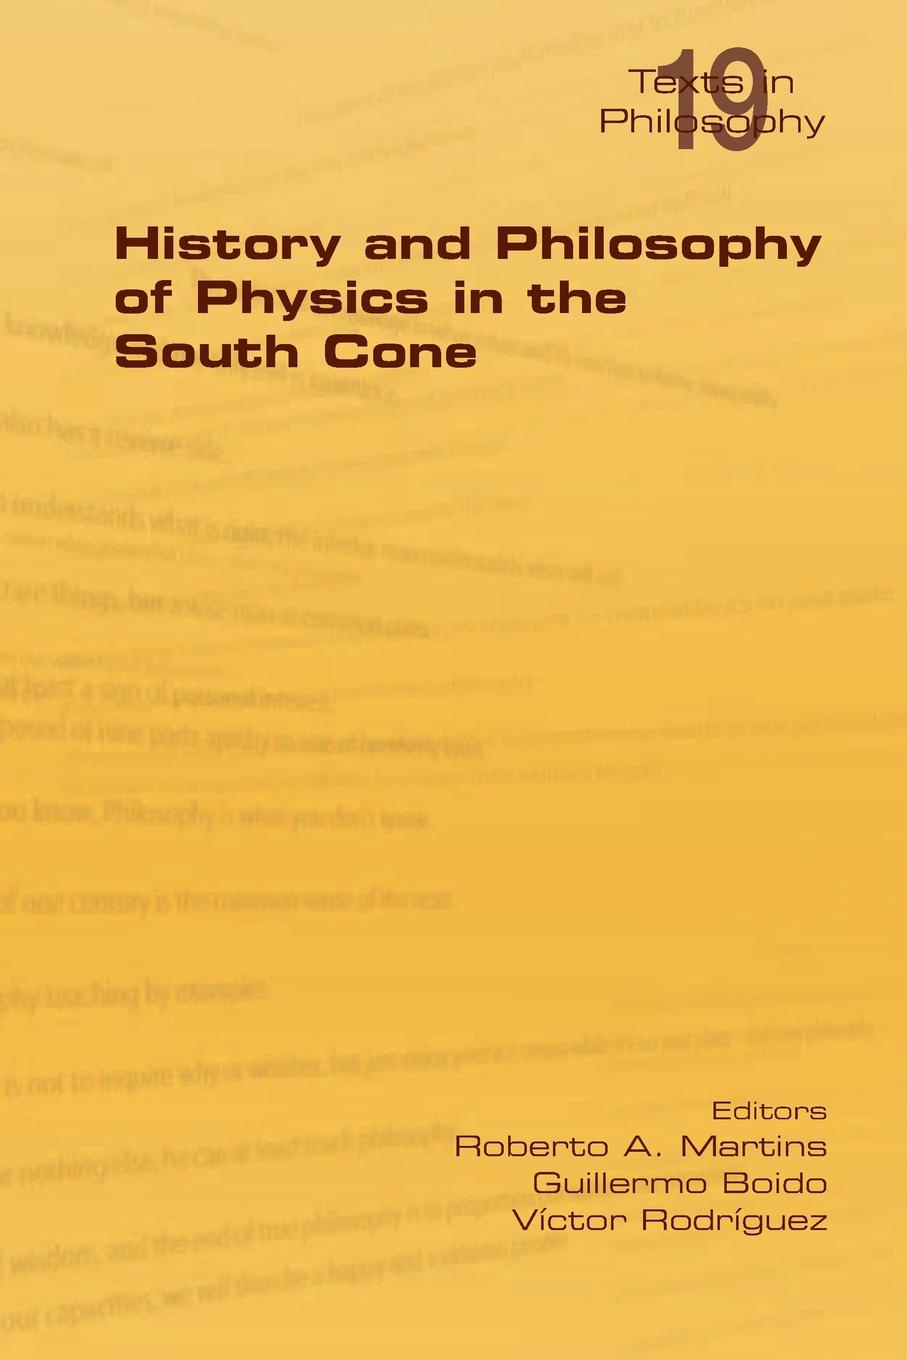 History and Philosophy of Physics in the South Cone history and philosophy of physics in the south cone